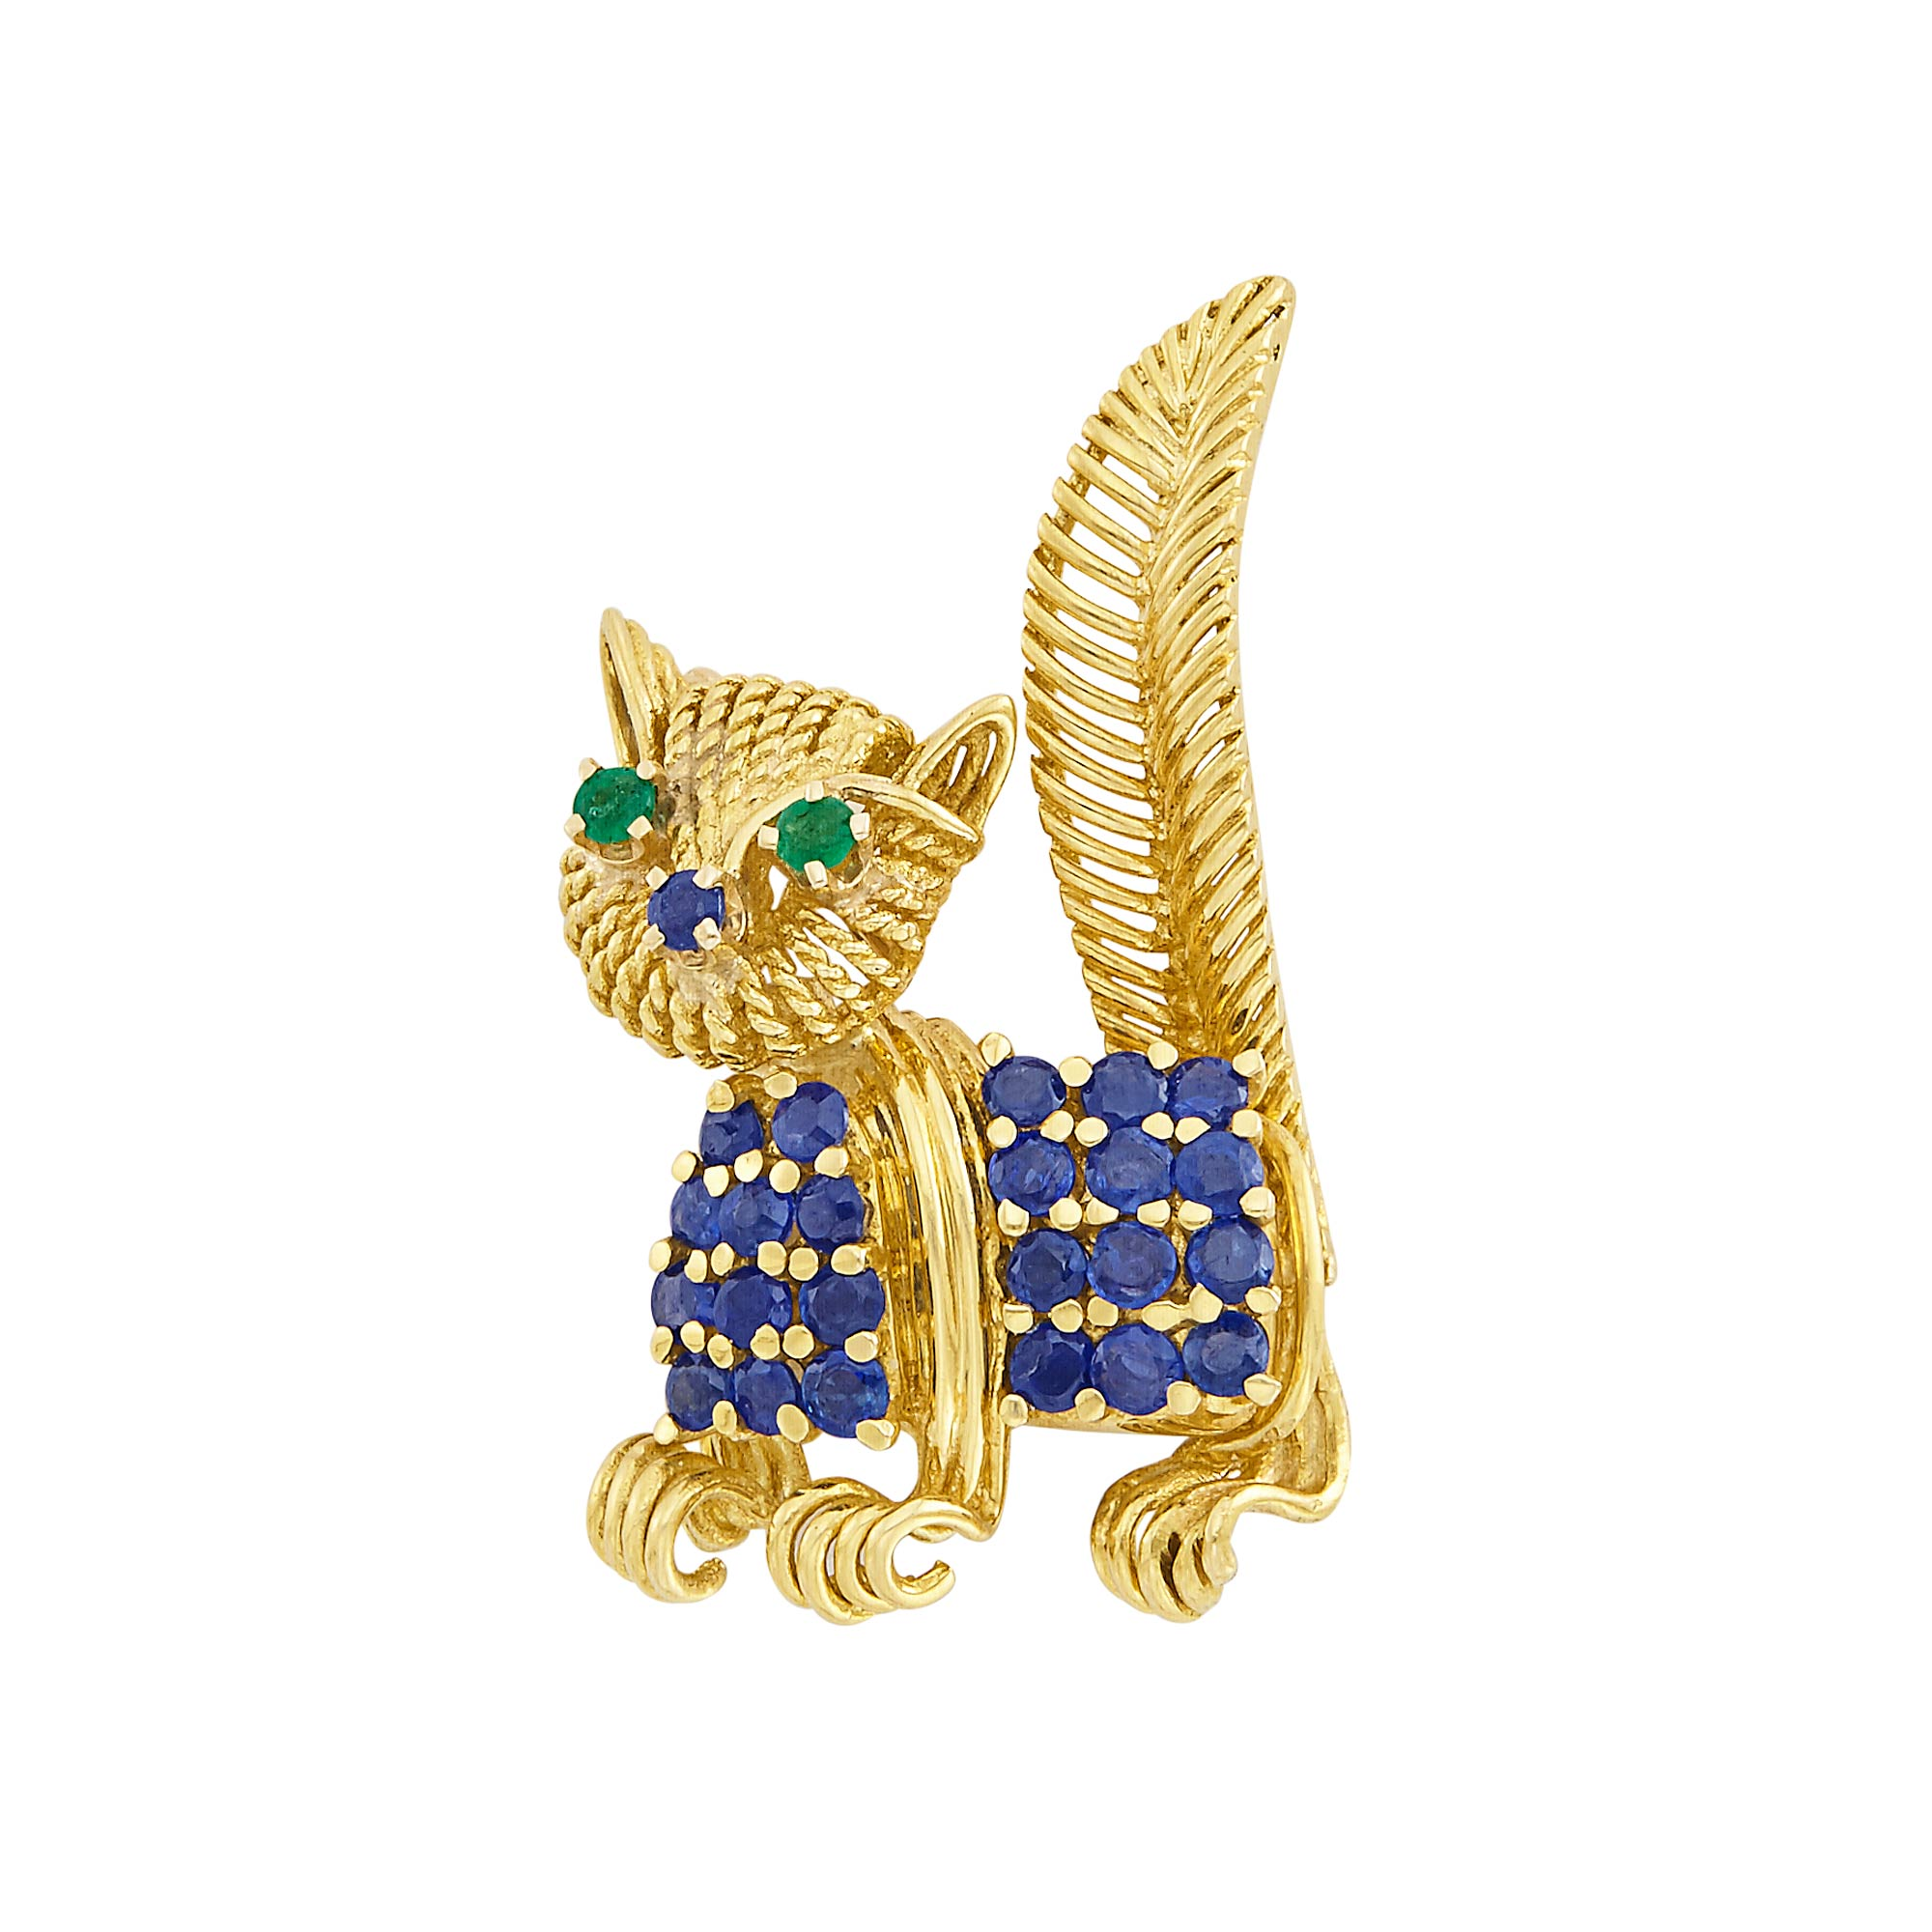 Lot image - Gold, Sapphire and Emerald Cat Pin, Tiffany & Co.